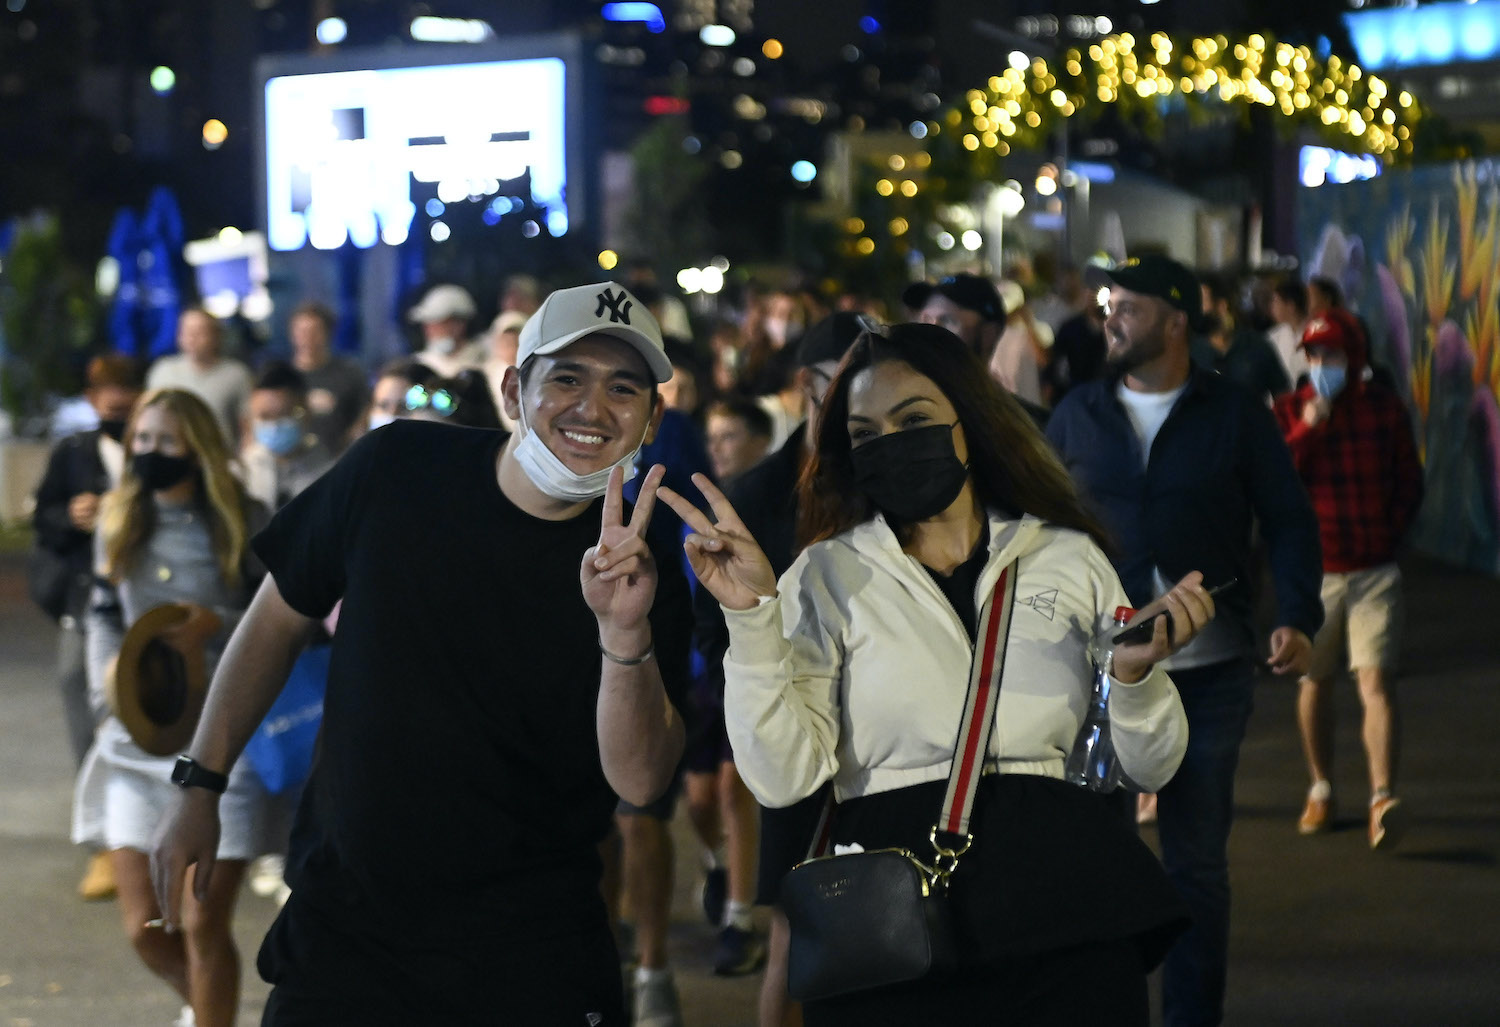 Fans leave the Australian Open on Friday night after Victoria state authorities announced a surprise five-day lockdown following the discovery of a handful of Covid cases at a hotel. (Reuters Photo)